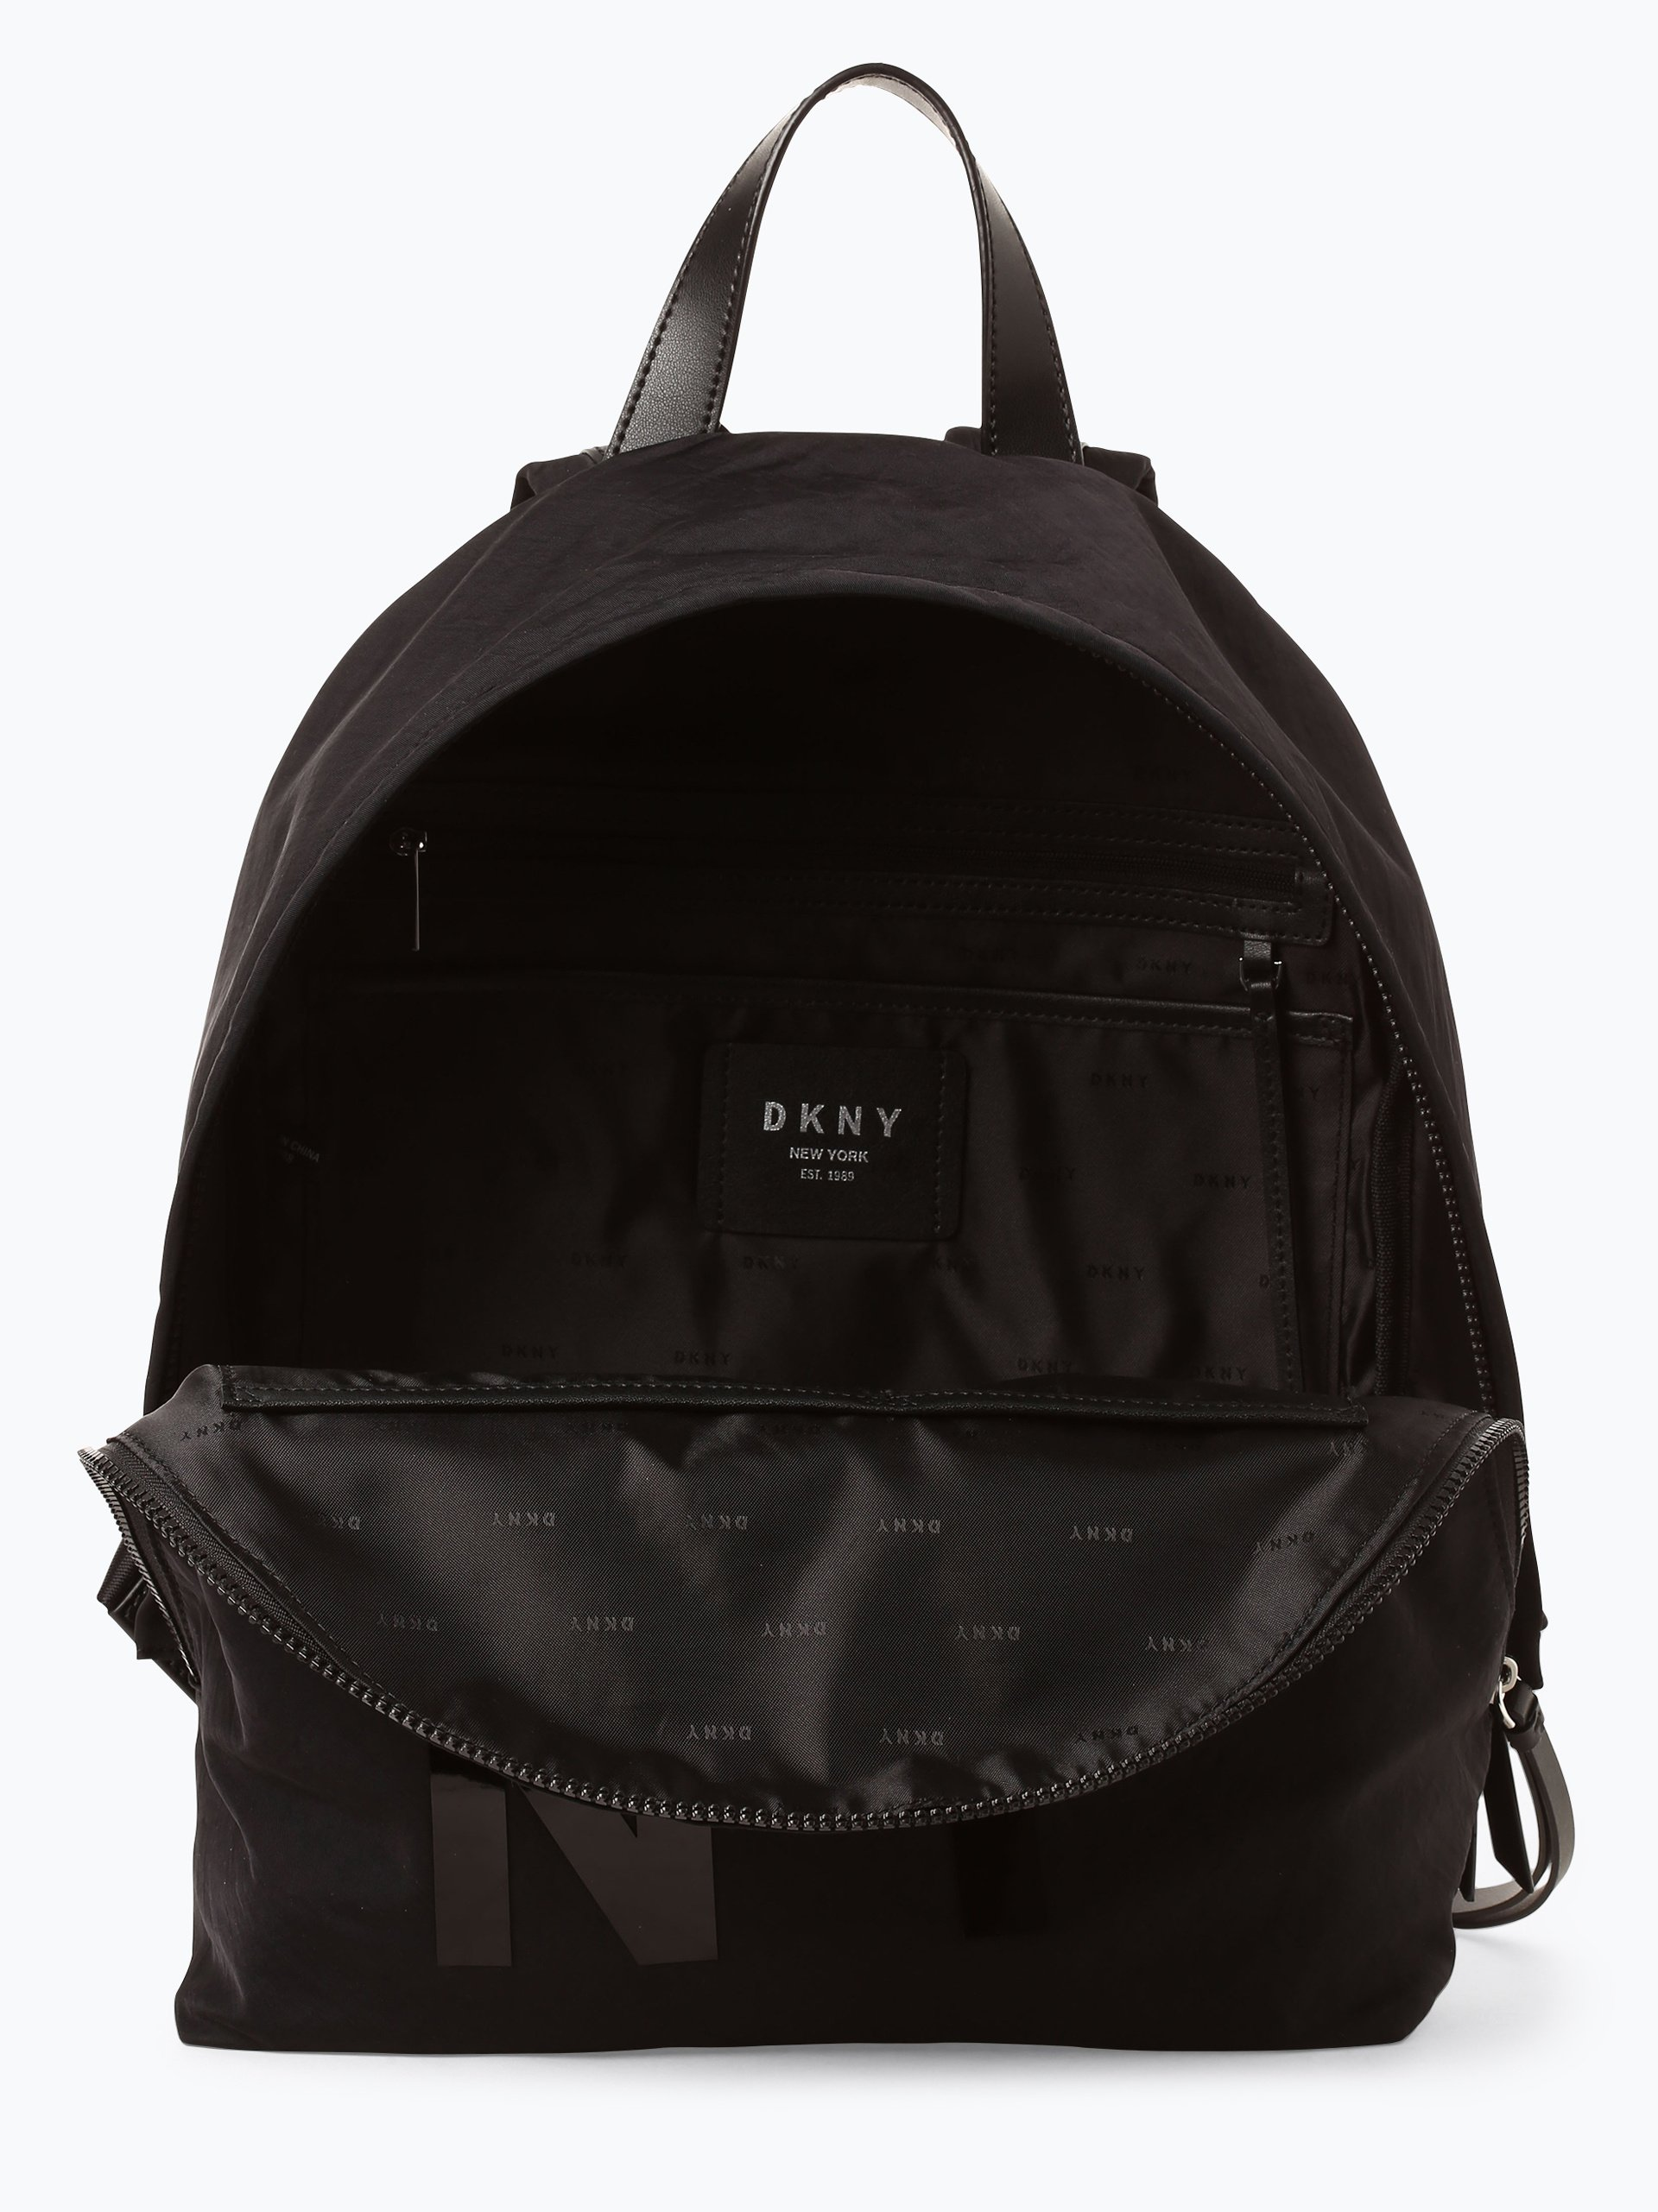 dkny damen rucksack schwarz uni online kaufen peek und cloppenburg de. Black Bedroom Furniture Sets. Home Design Ideas